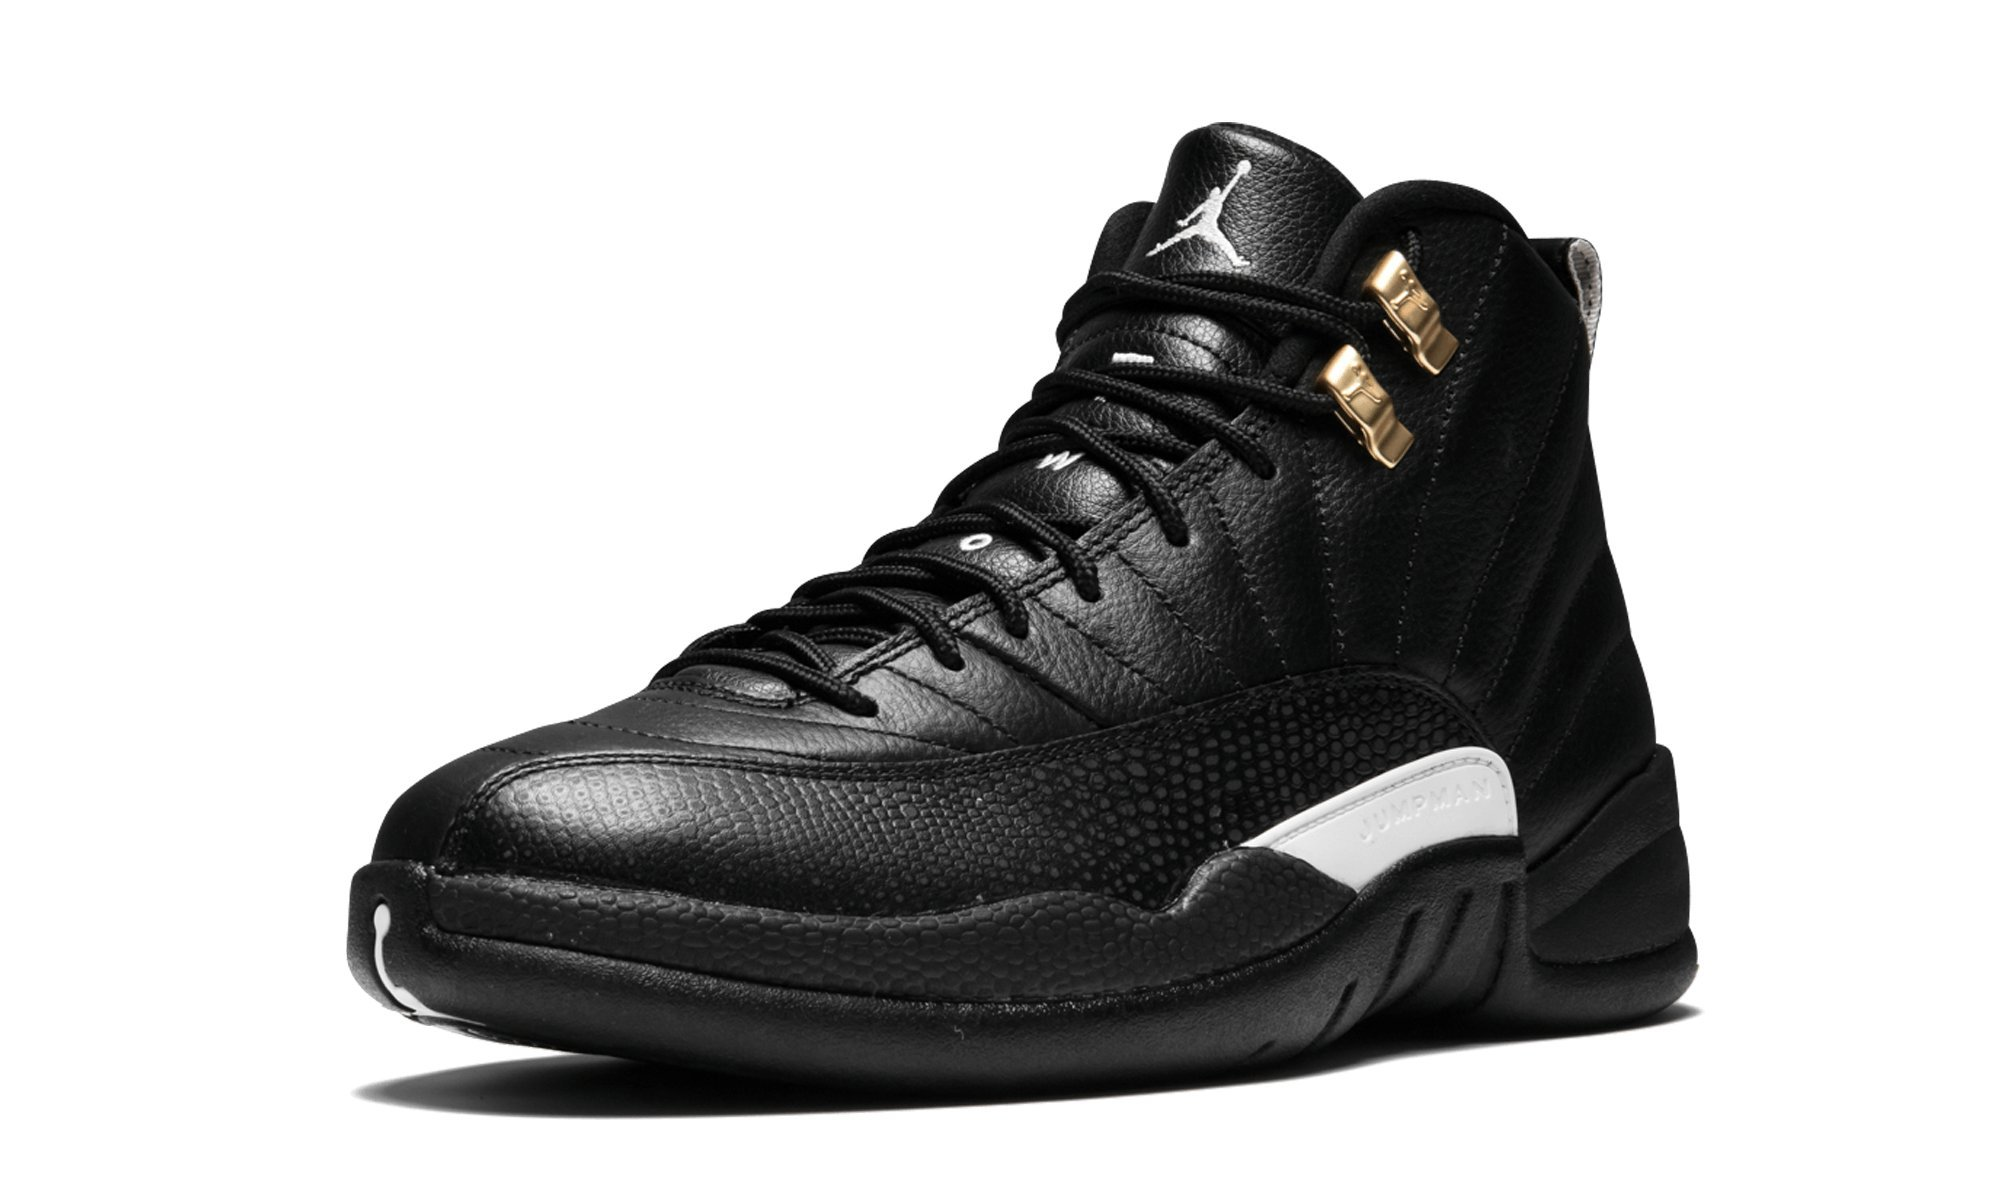 Air Jordan 12 Retro ''The Master'' - 130690 013 by Jordan